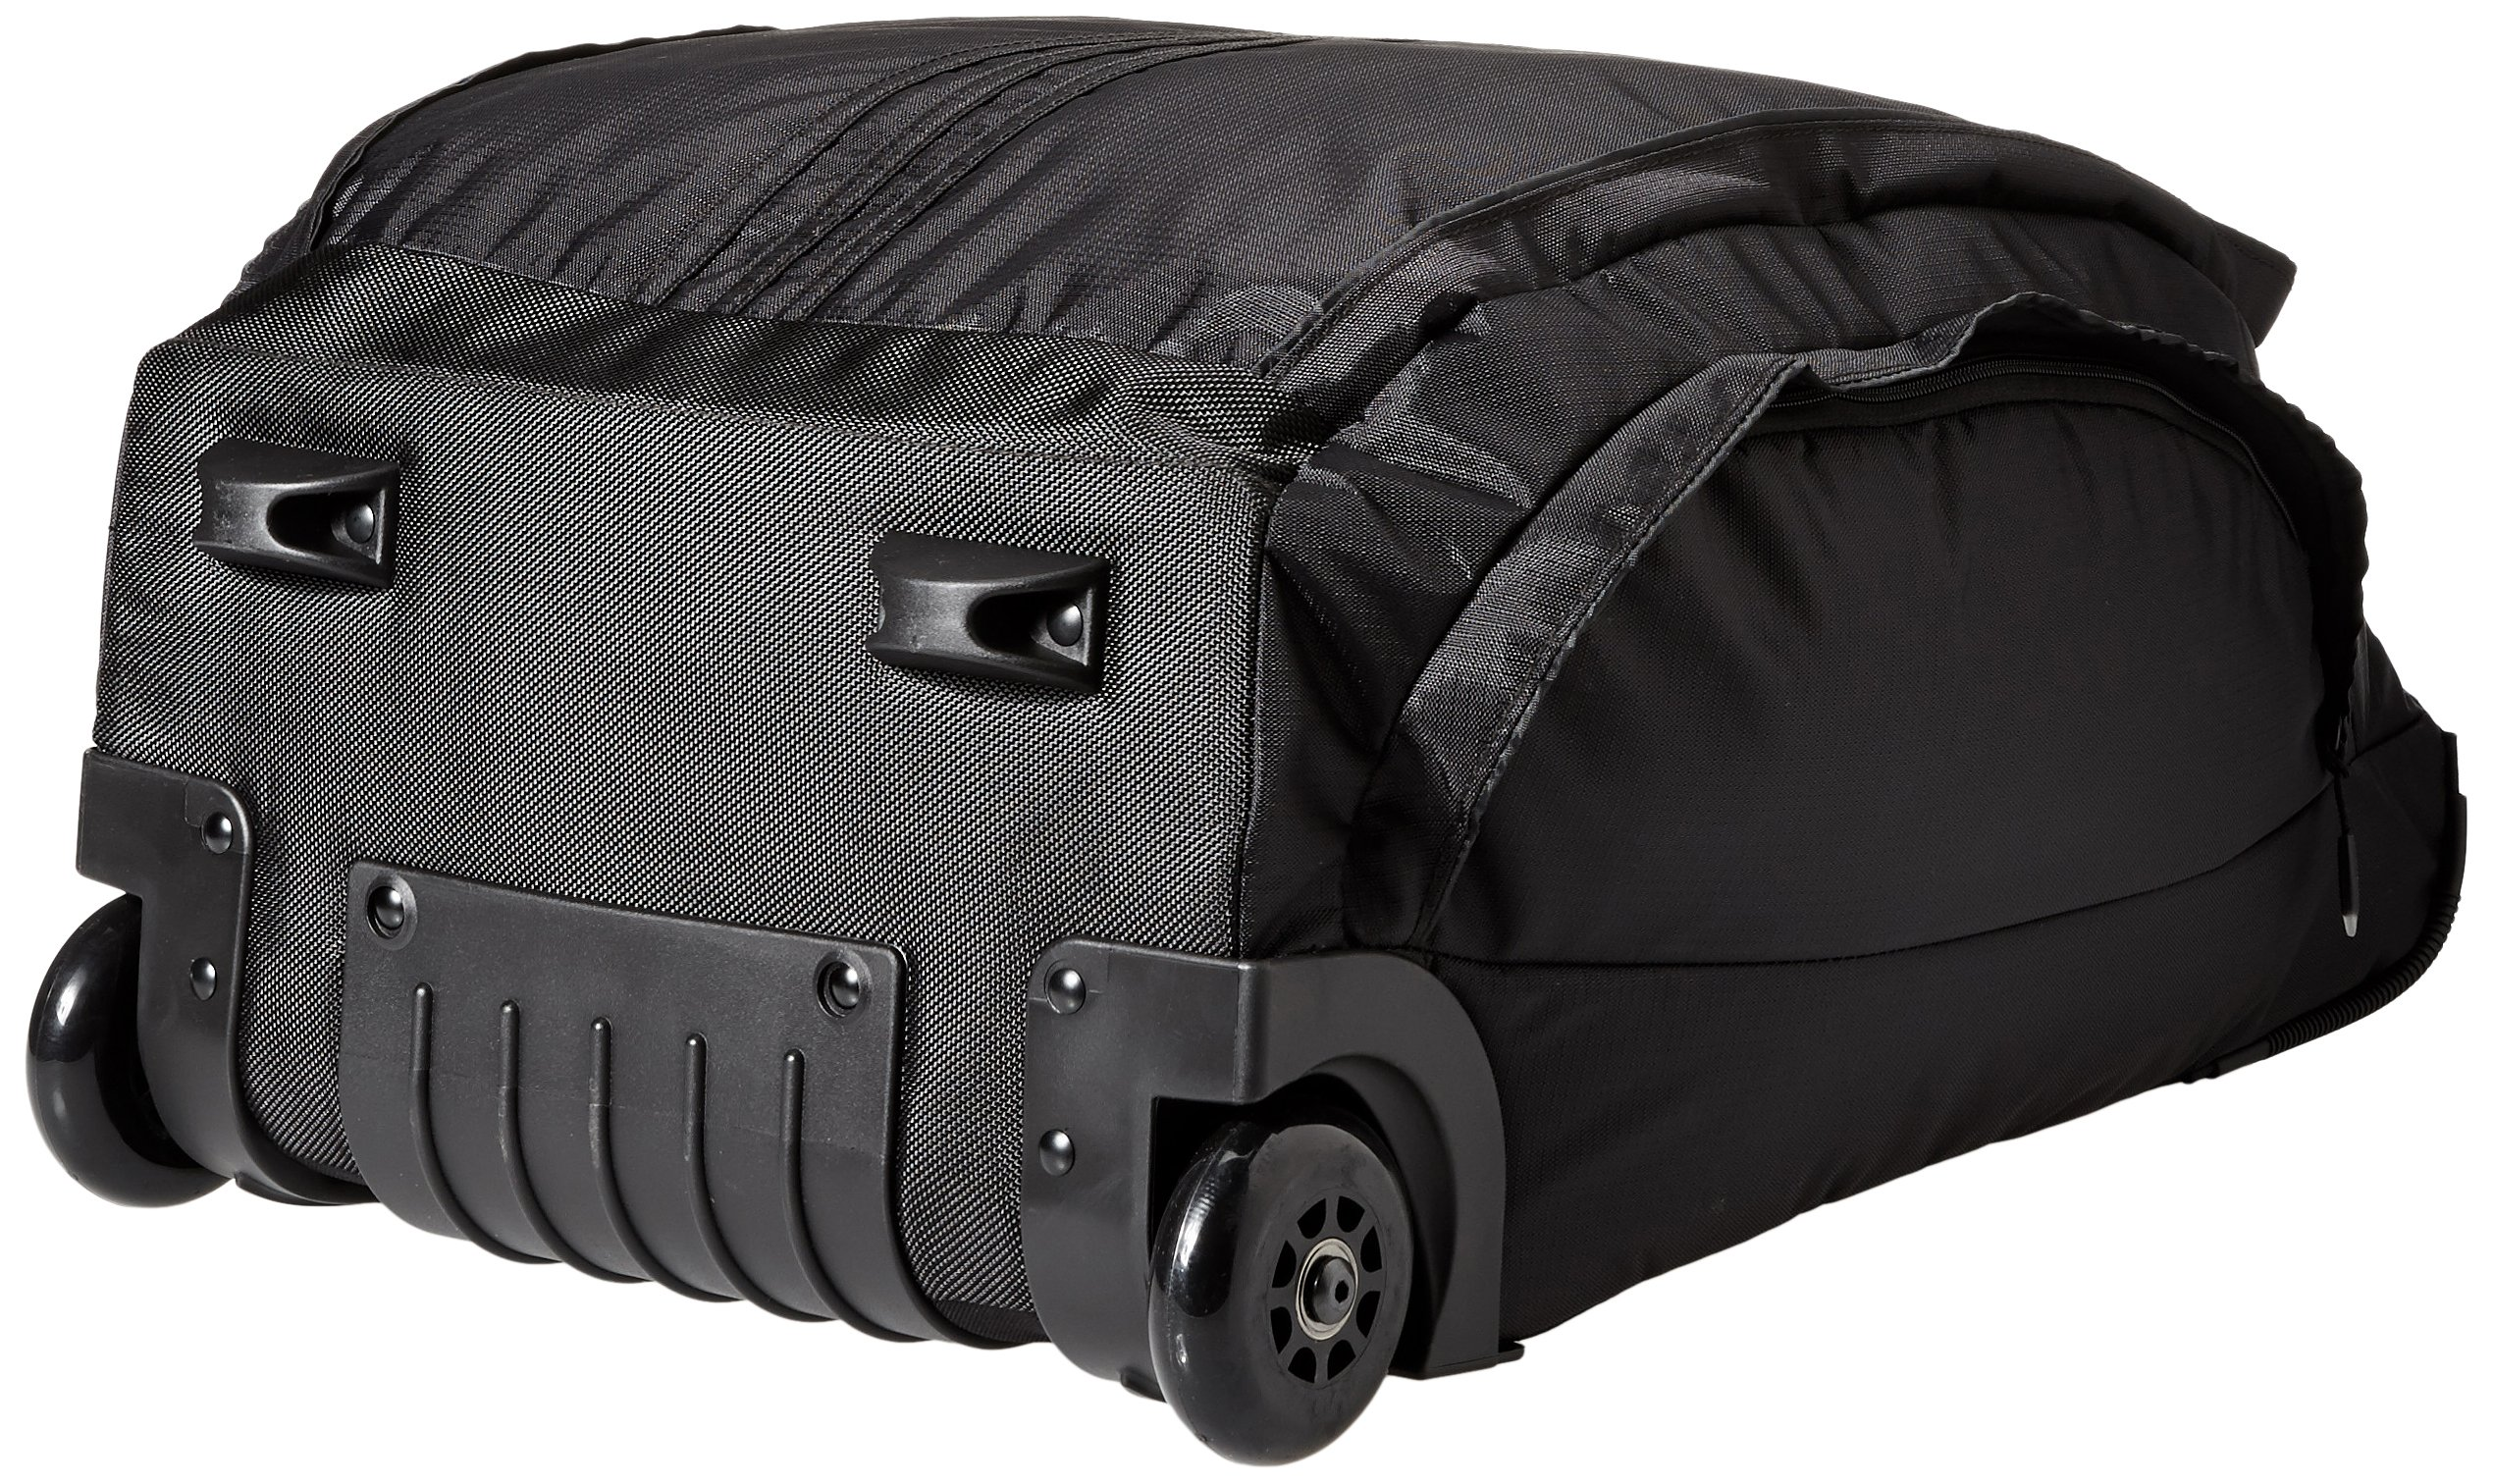 adidas Duel 21-Inch Wheel Bag, Black, One Size by adidas (Image #6)